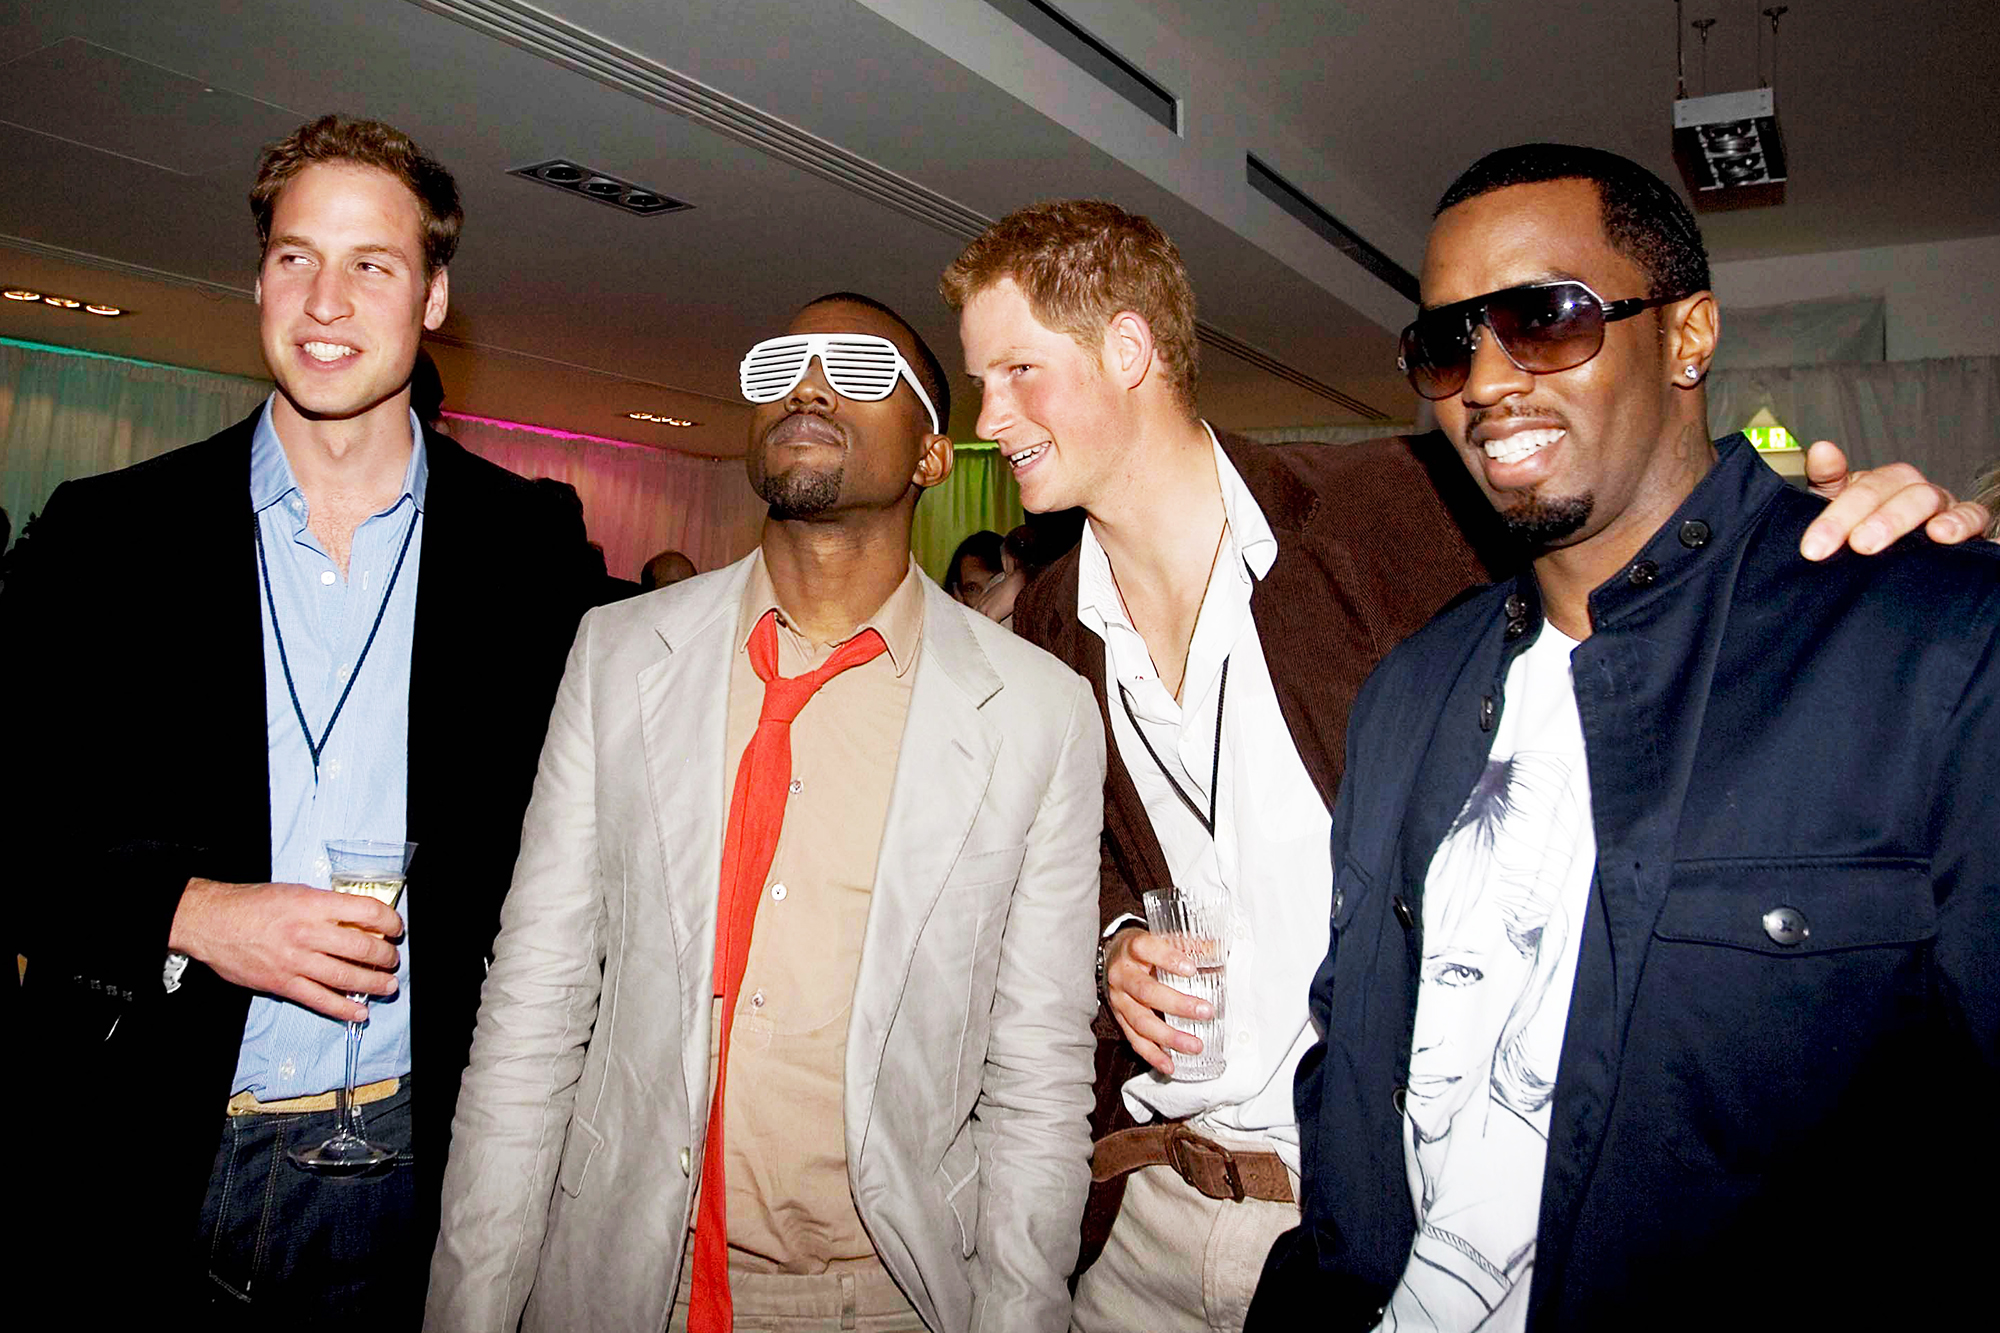 From left: Prince William, Kanye West, Prince Harry and P. Diddy at Wembley Stadium in London, on July 1, 2007.